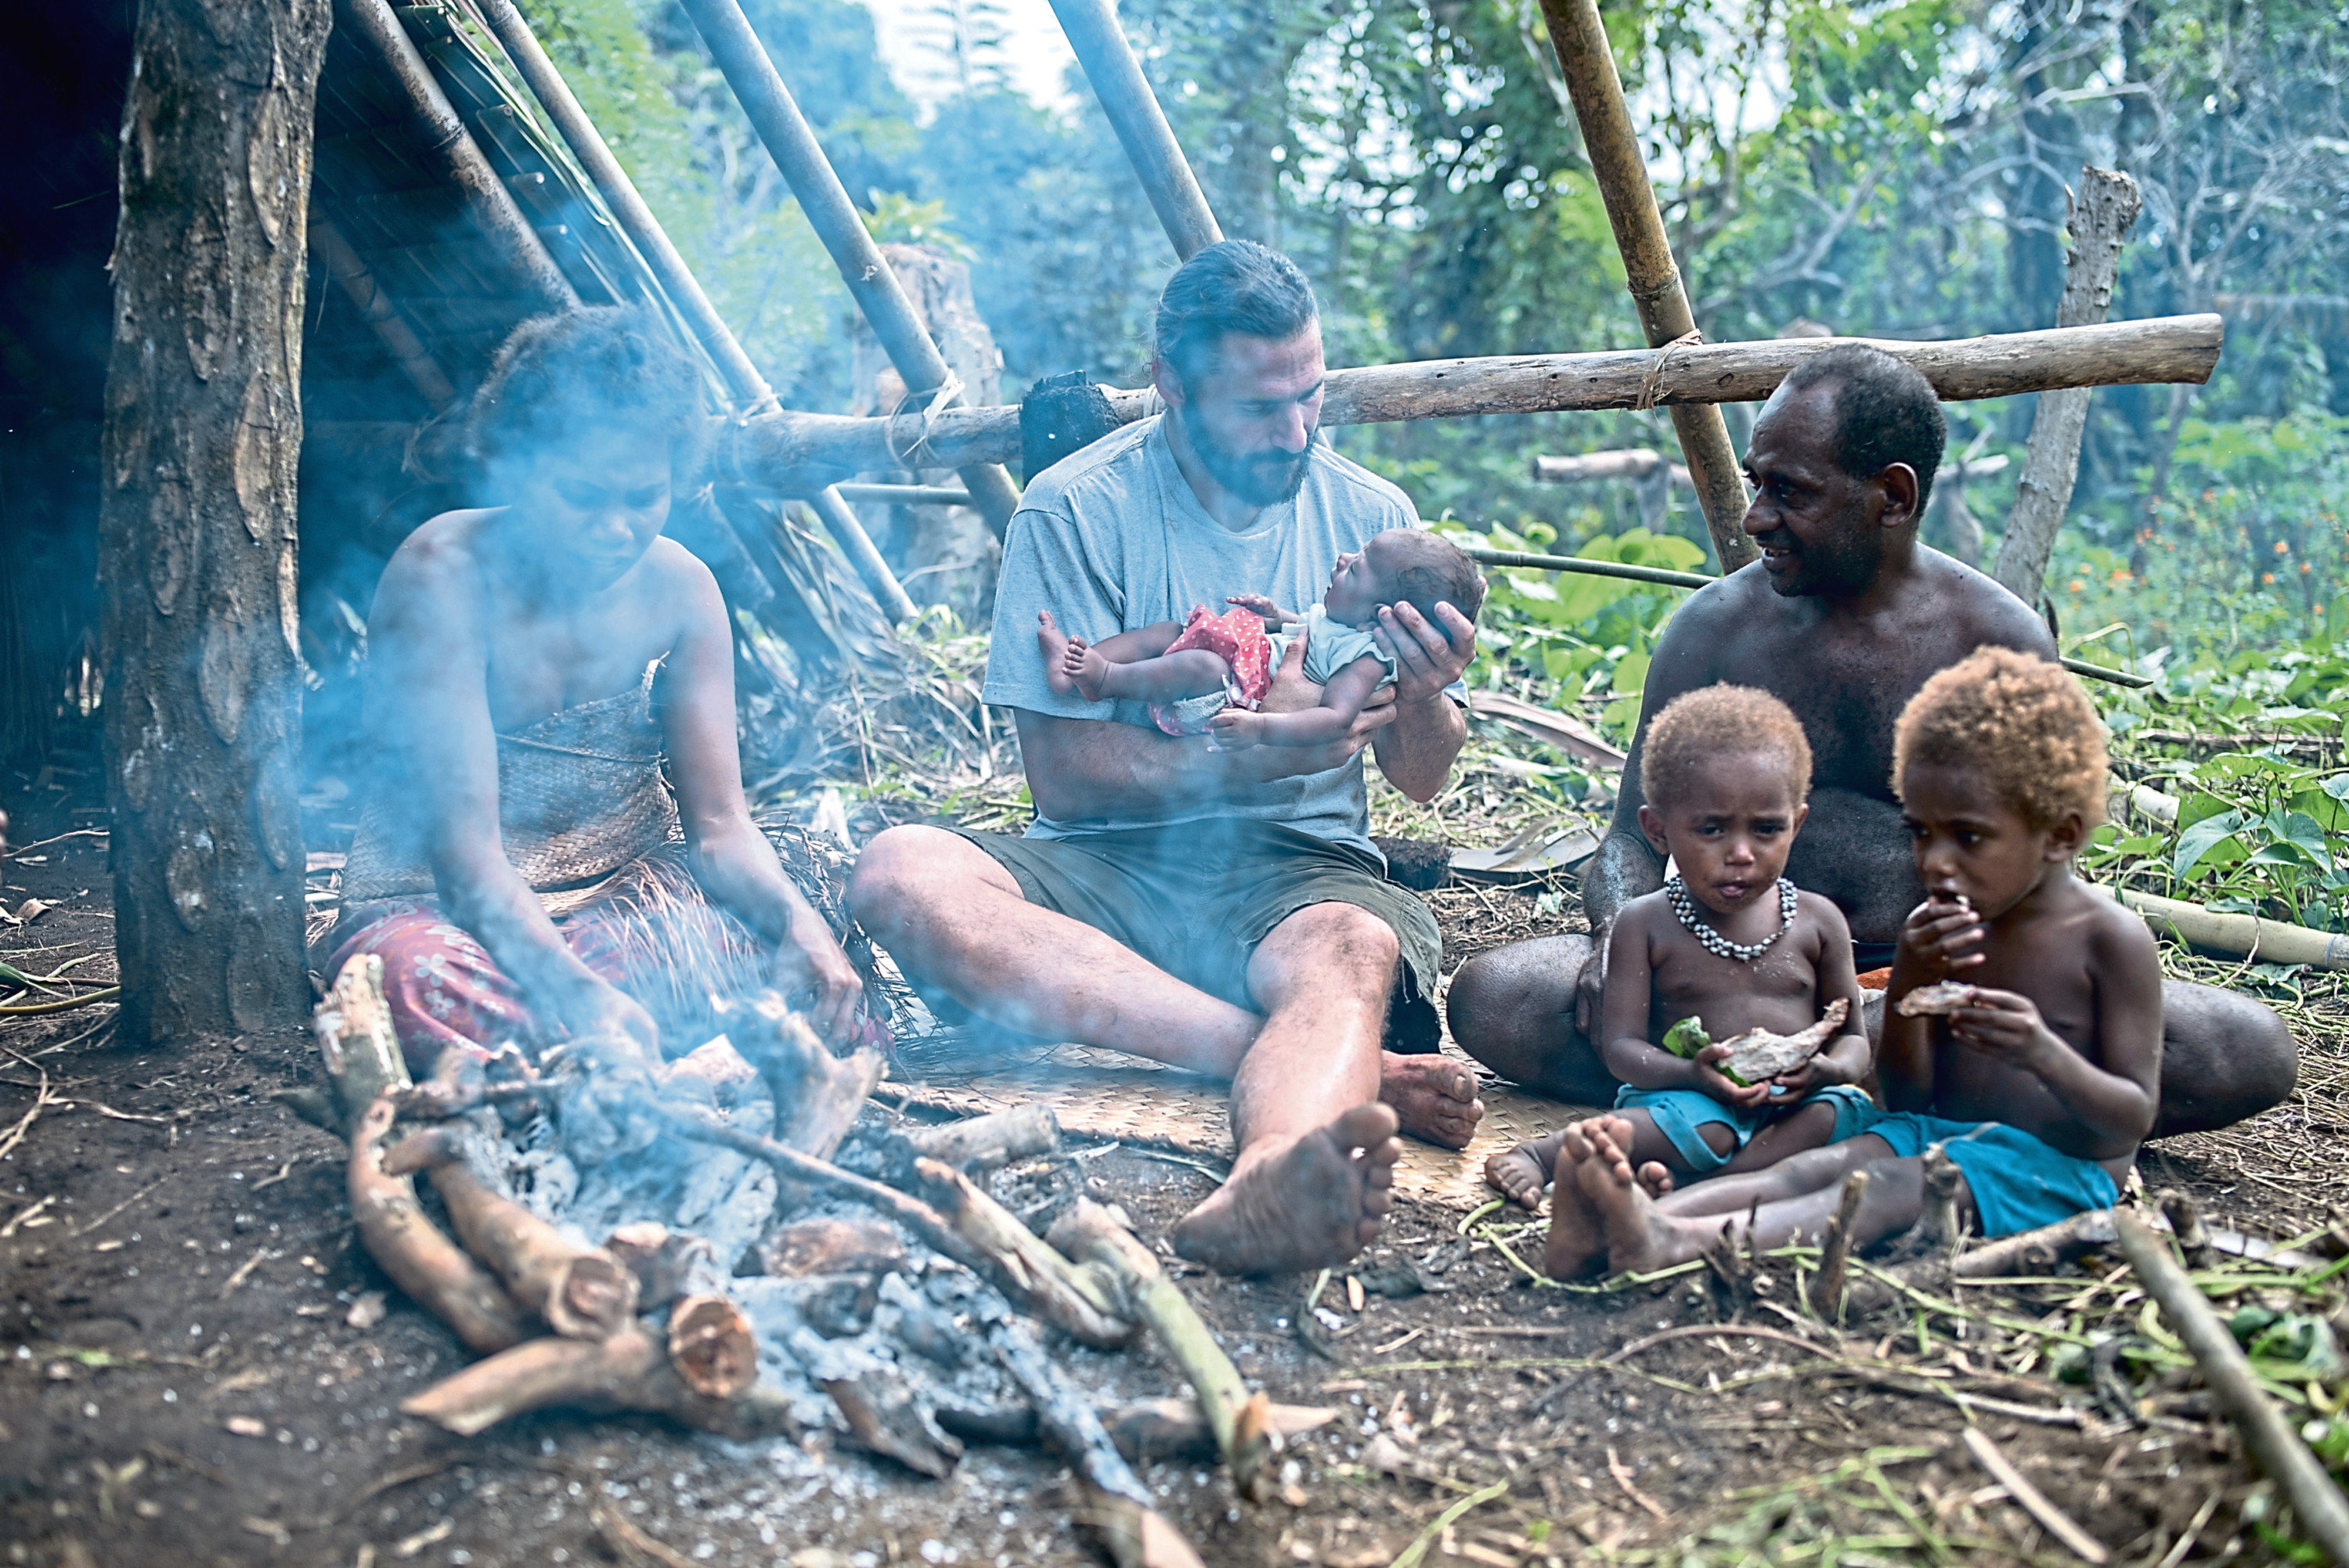 Vanuatu - Hazen holding a newborn child alongside the Salkon Chief Atkins family. (National Geographic/Jimmy Cape)